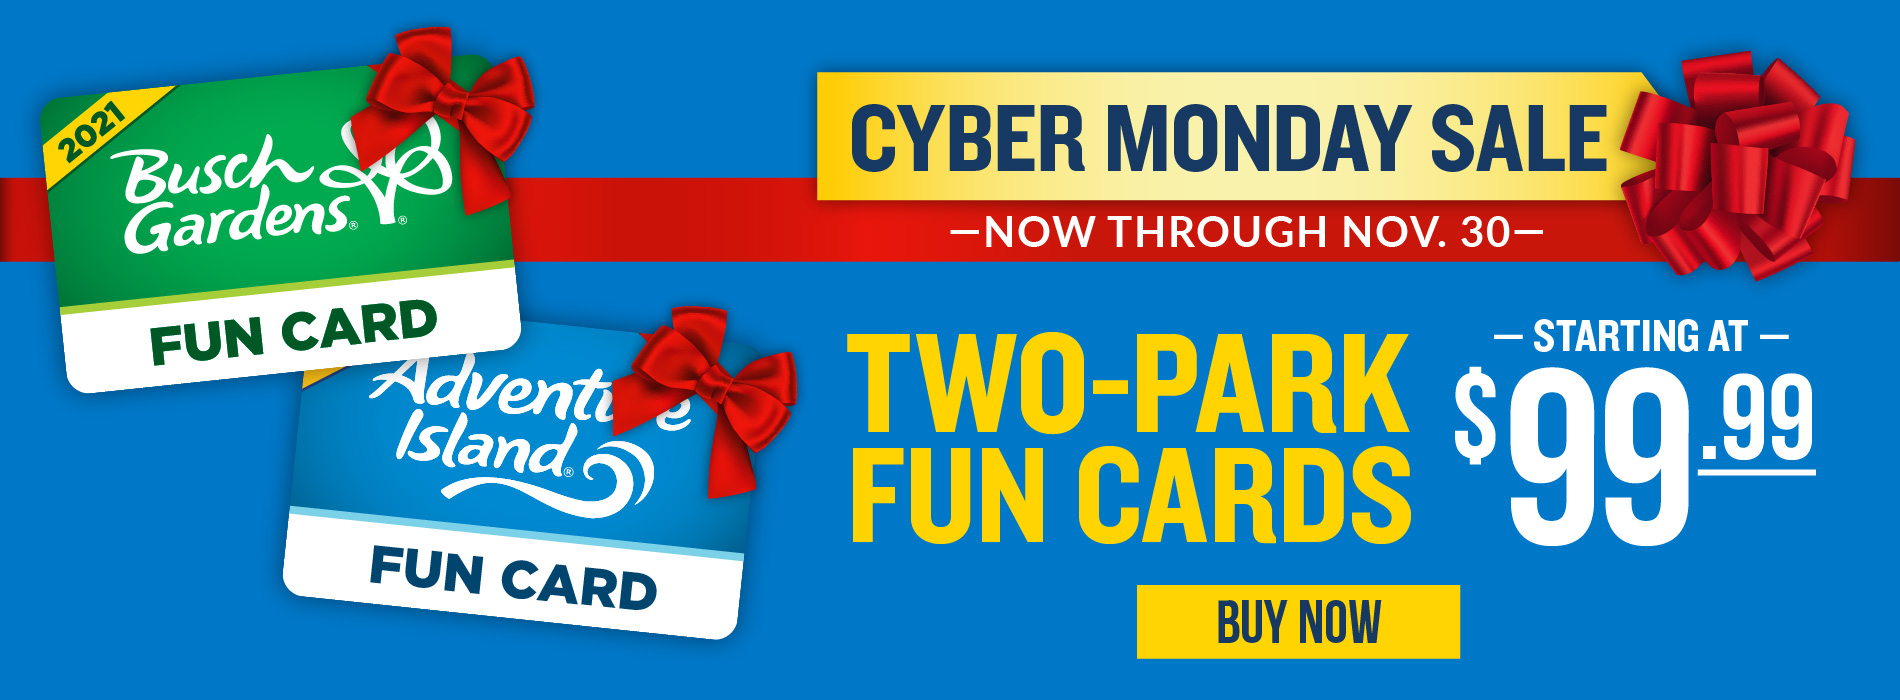 Cyber Monday Two Park Fun Cards $99.99